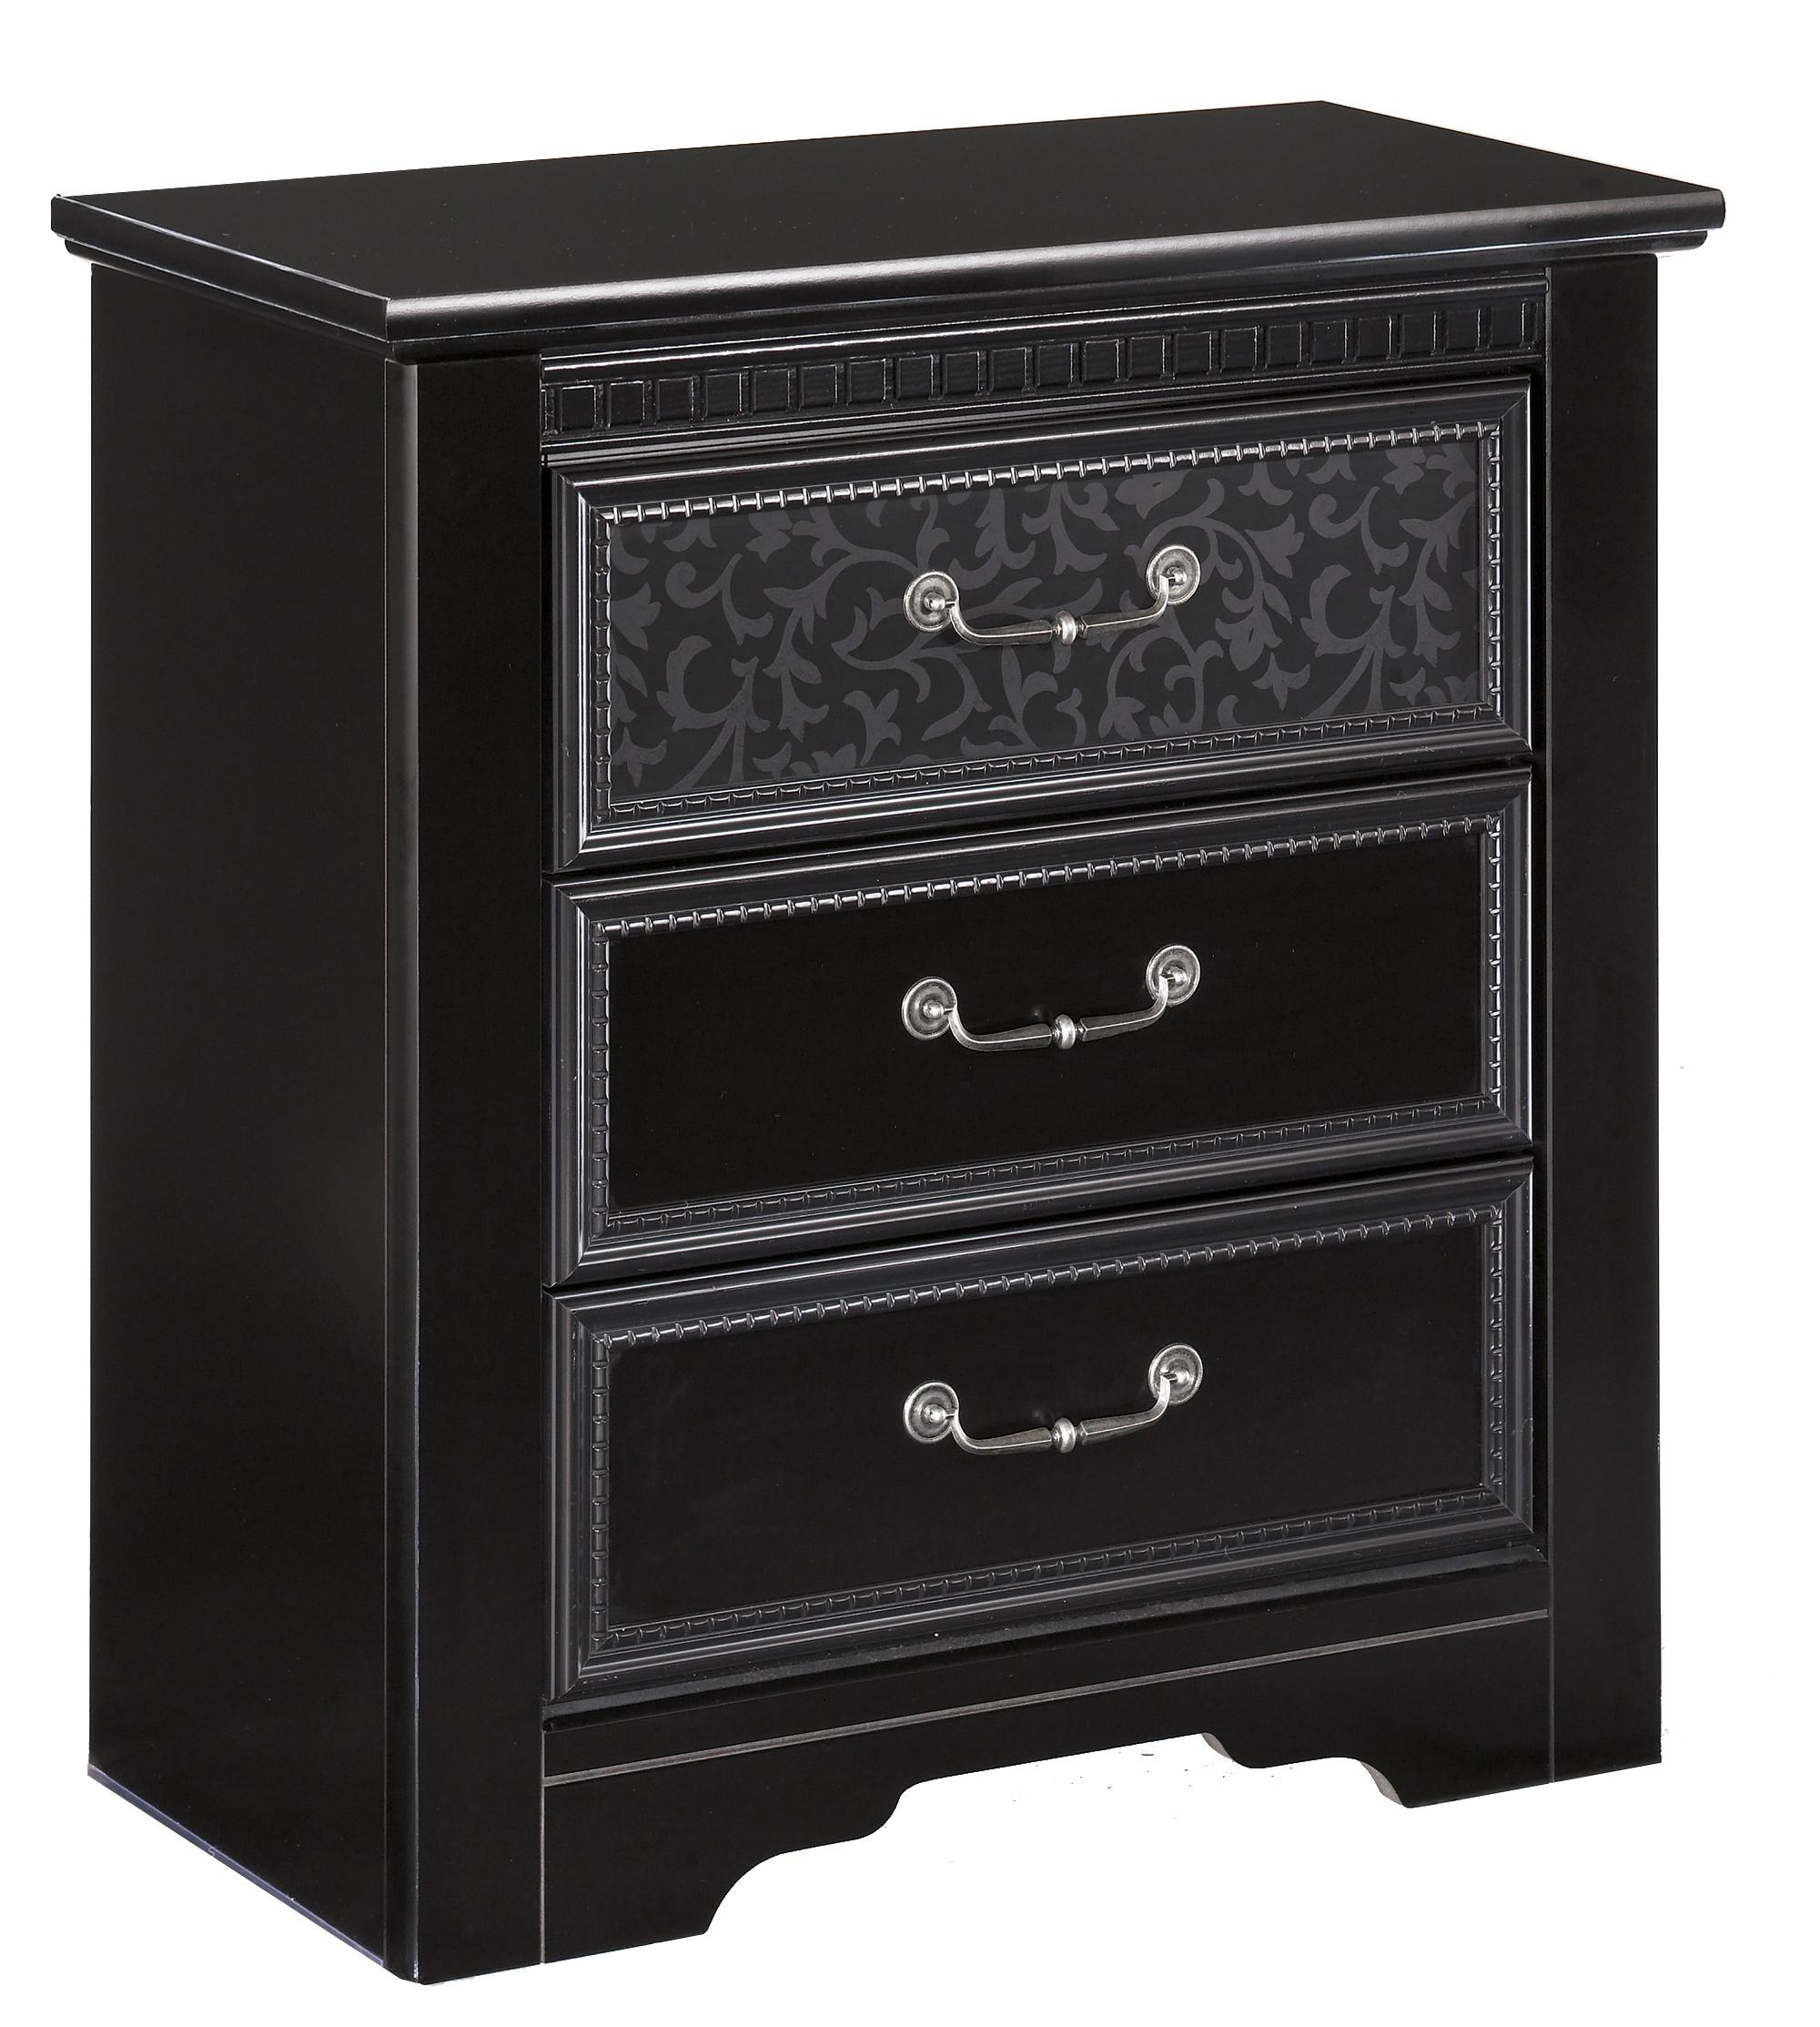 Signature Design by Ashley Cavallino Nightstand - Item Number: B291-93